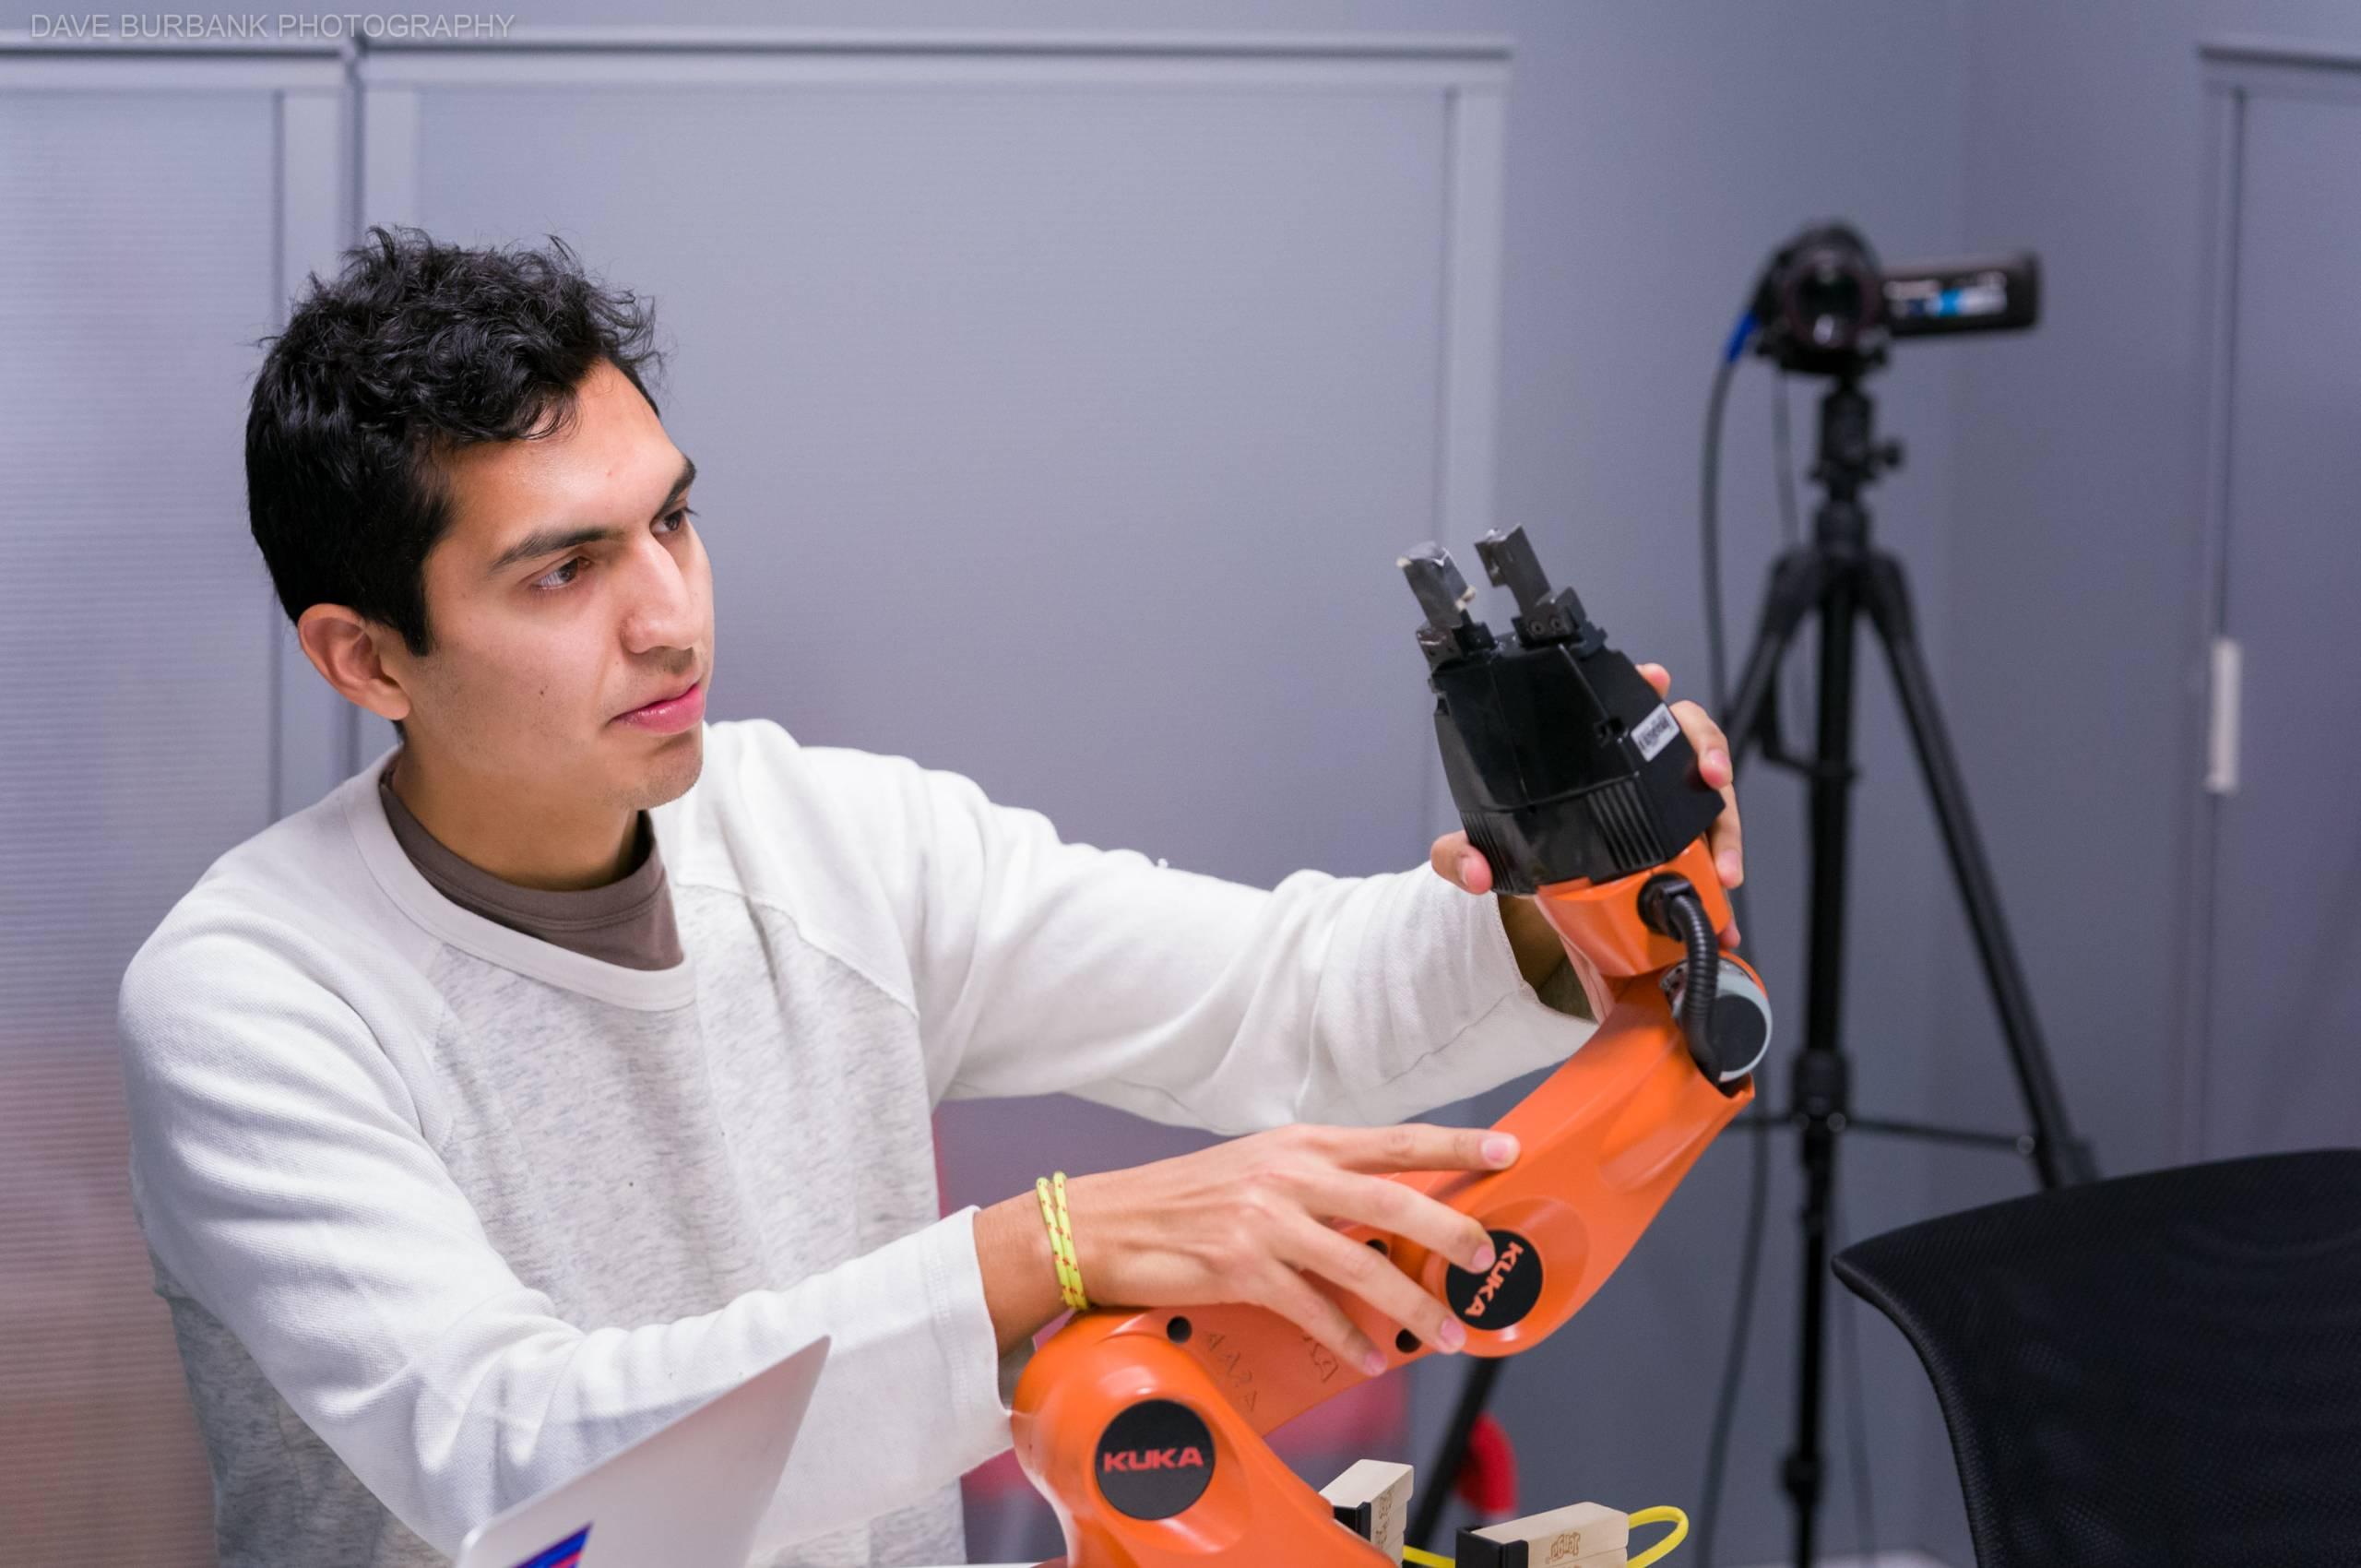 Cornell PhD candidate Houston Claure makes adjustments to a robot used in the Information Science's Robot in Groups Lab in Gates Hall.